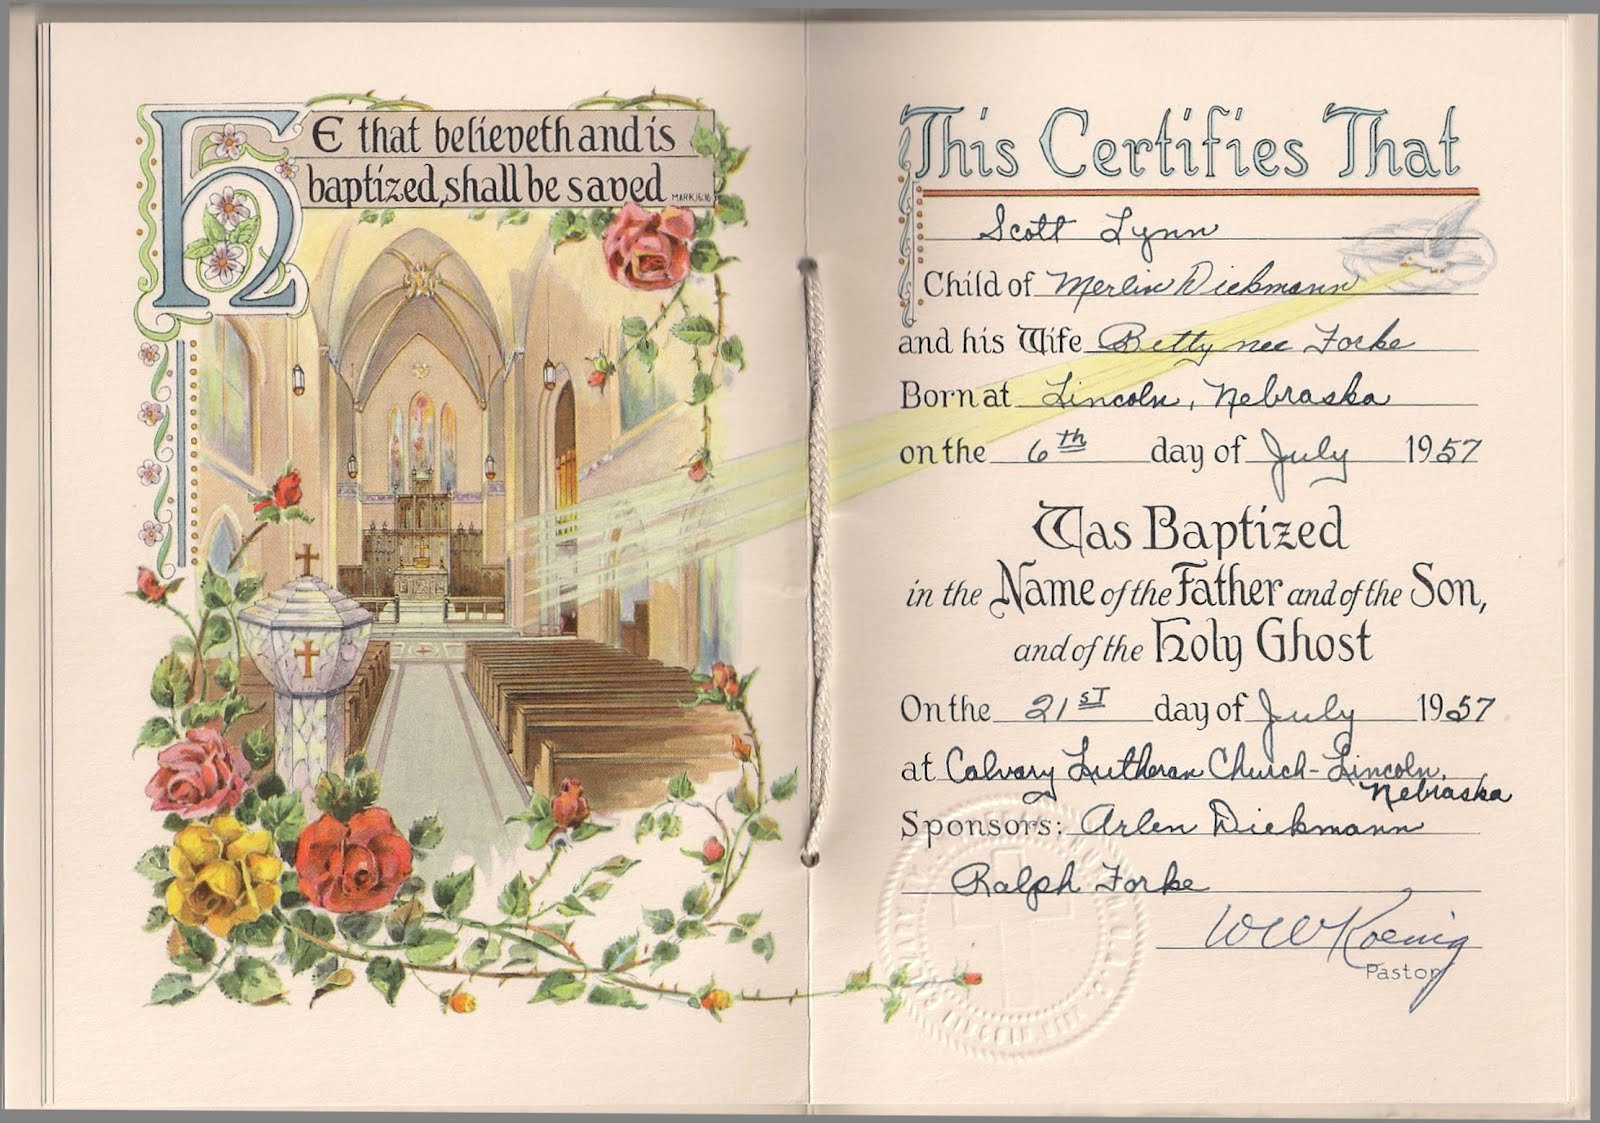 Baptism Certificates Free Download Lovely Stand Firm Looking for Awesome Baptismal Certicates or